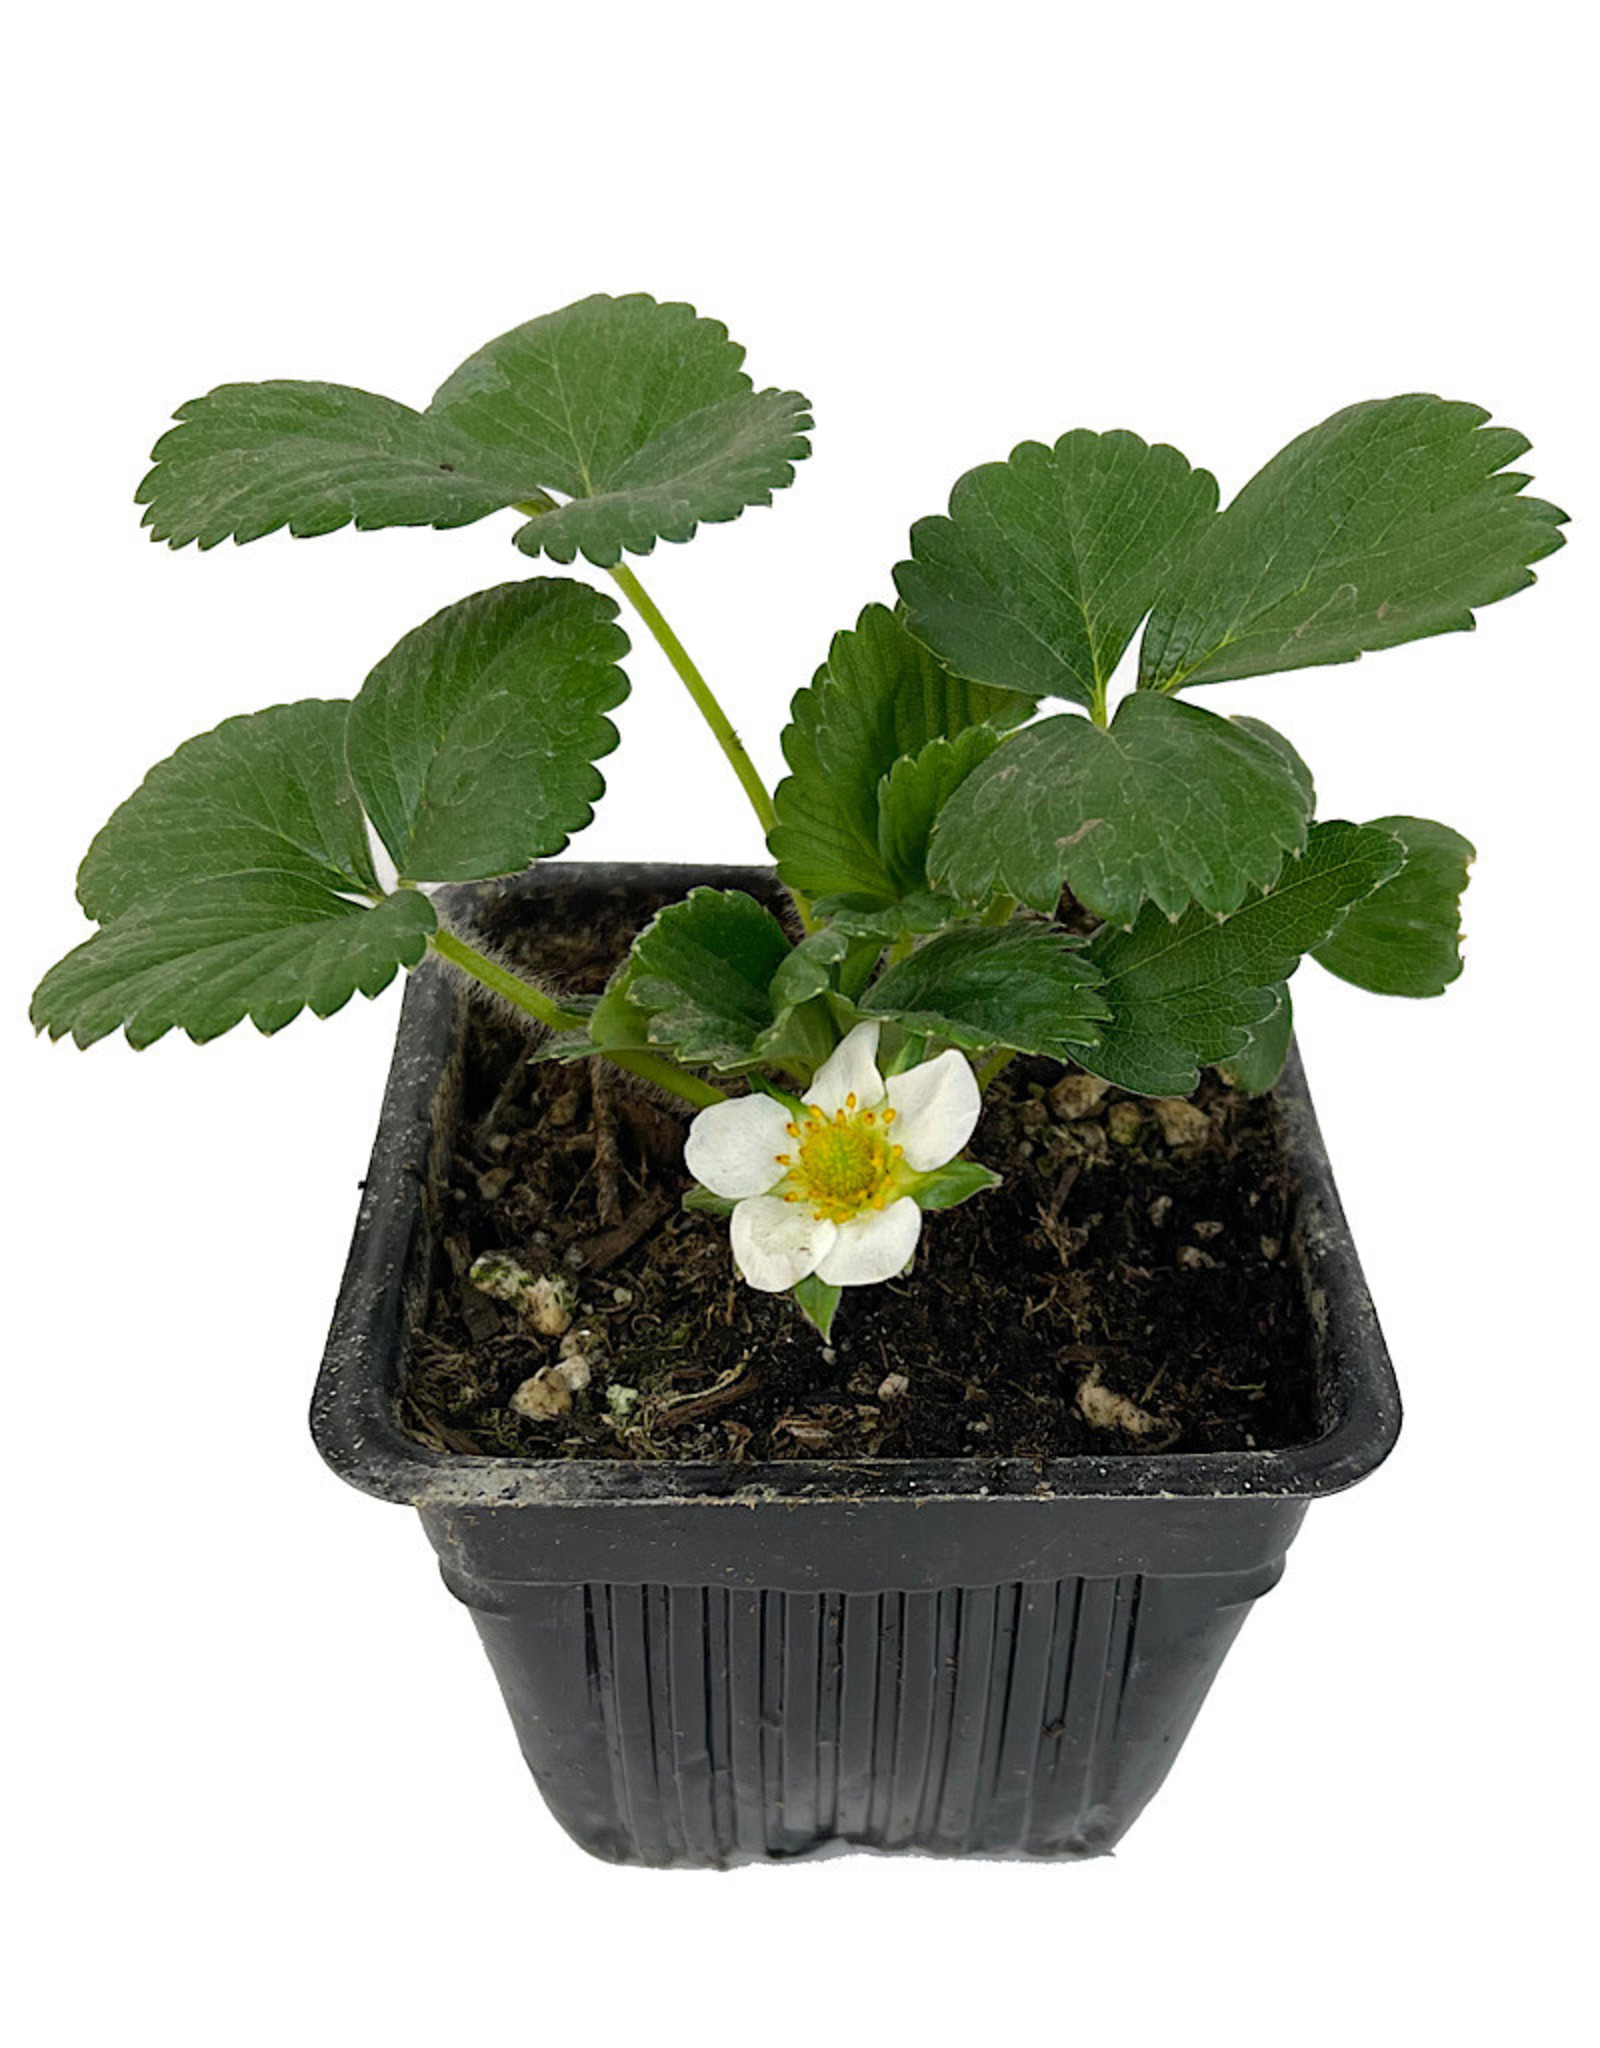 Strawberry 'Albion' 4 Inch